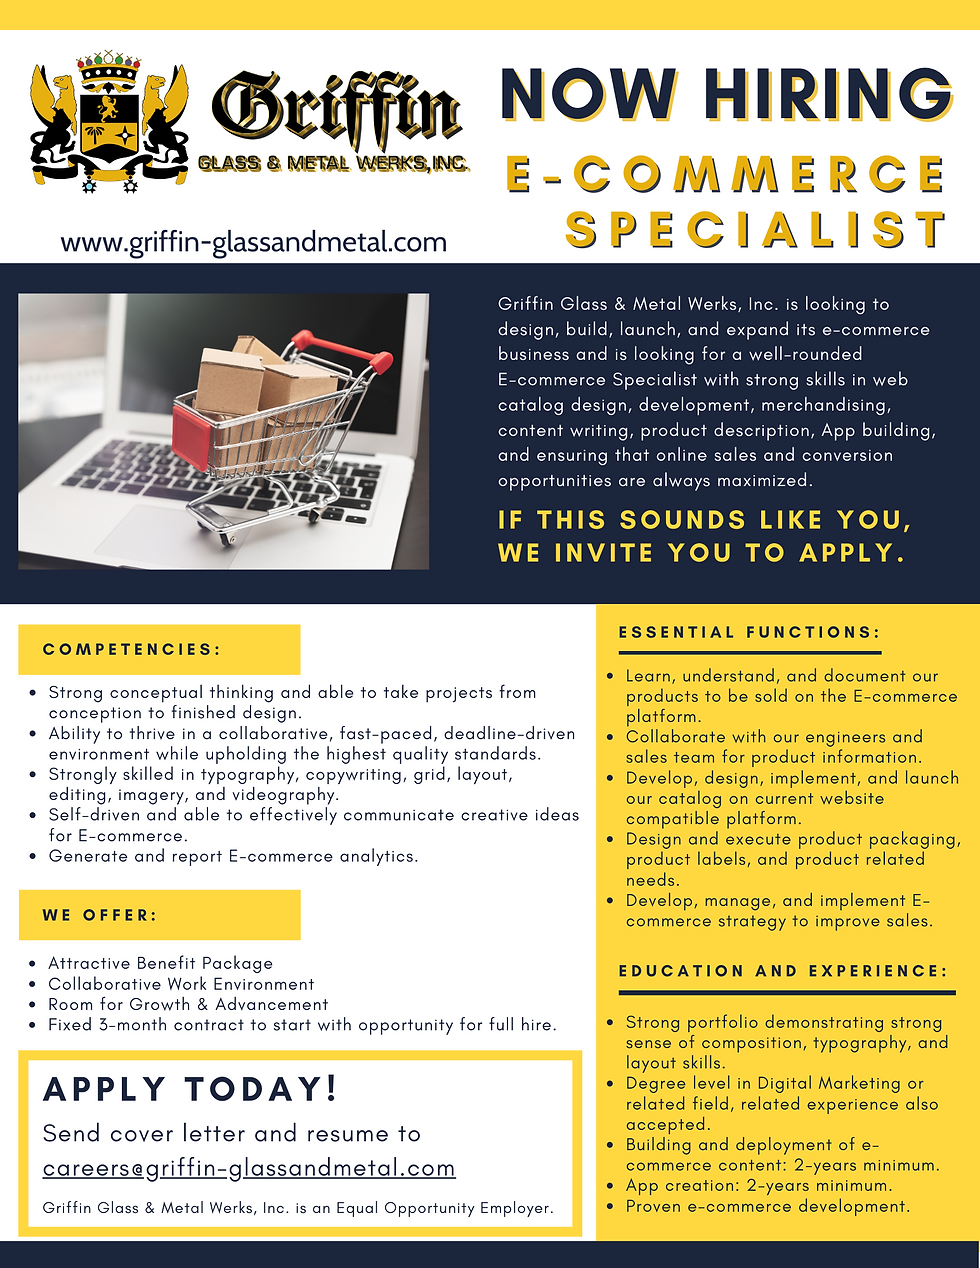 GRIFFIN Now Hiring E-commerce Specialist